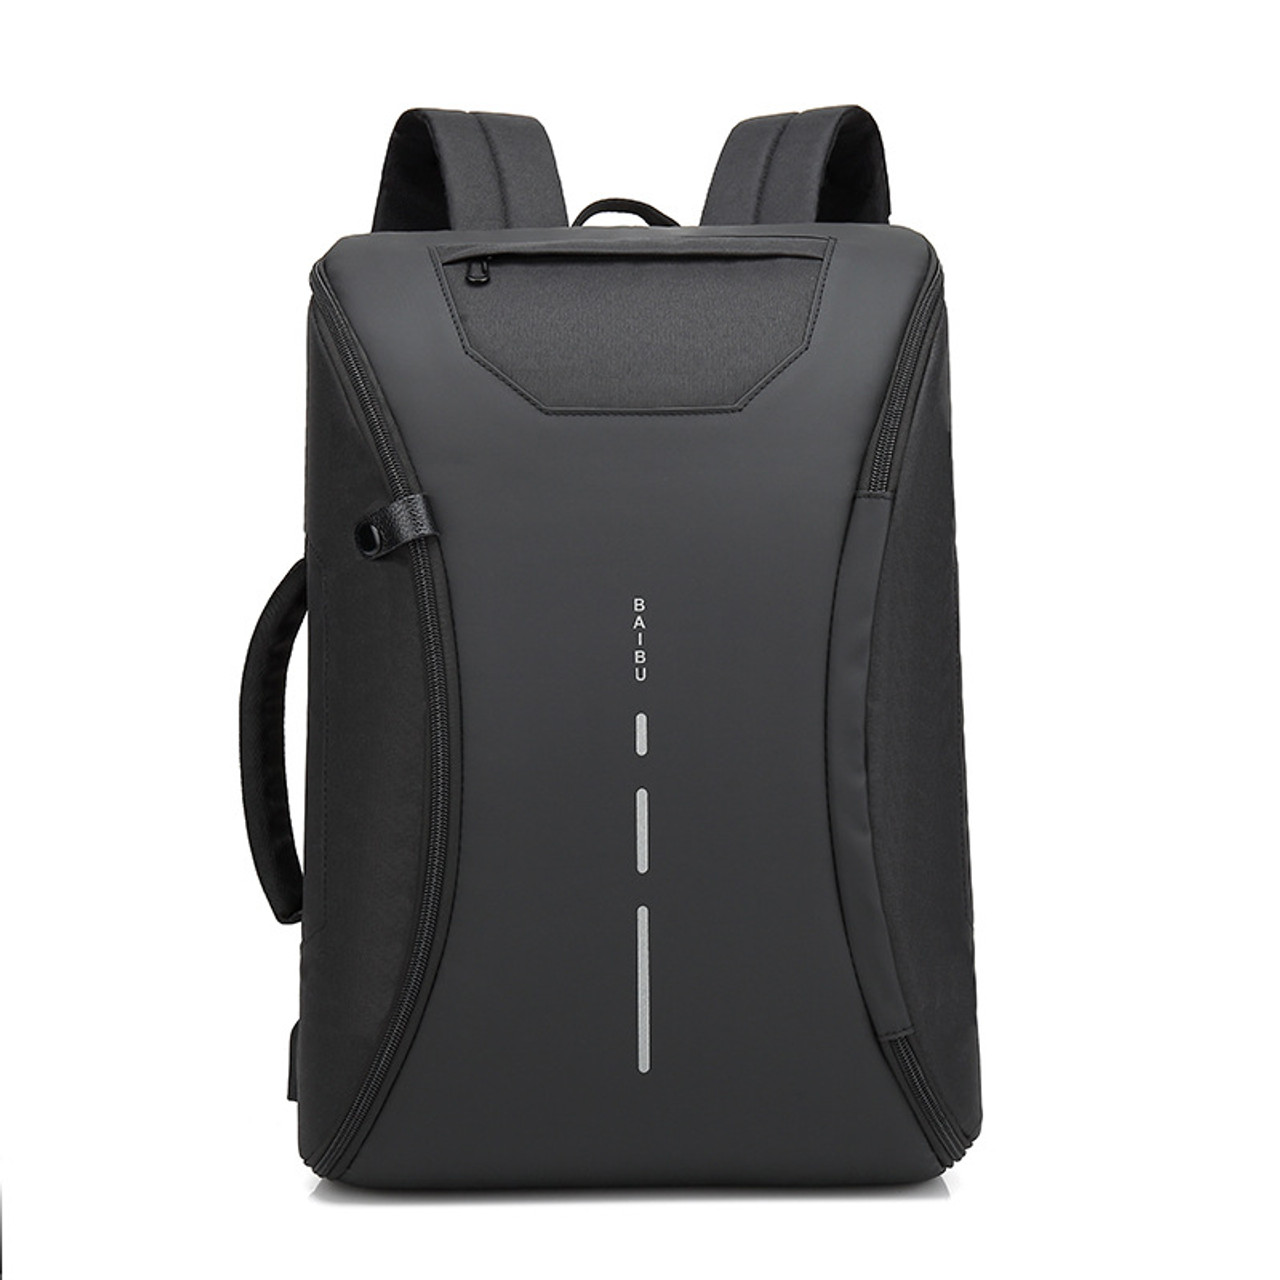 3fb30211ea4b 2018 Fashion Backpacks Men s Multifunction Waterproof Travel Backpack USB  Charging Anti Theft Laptop Backpack Casual School ...